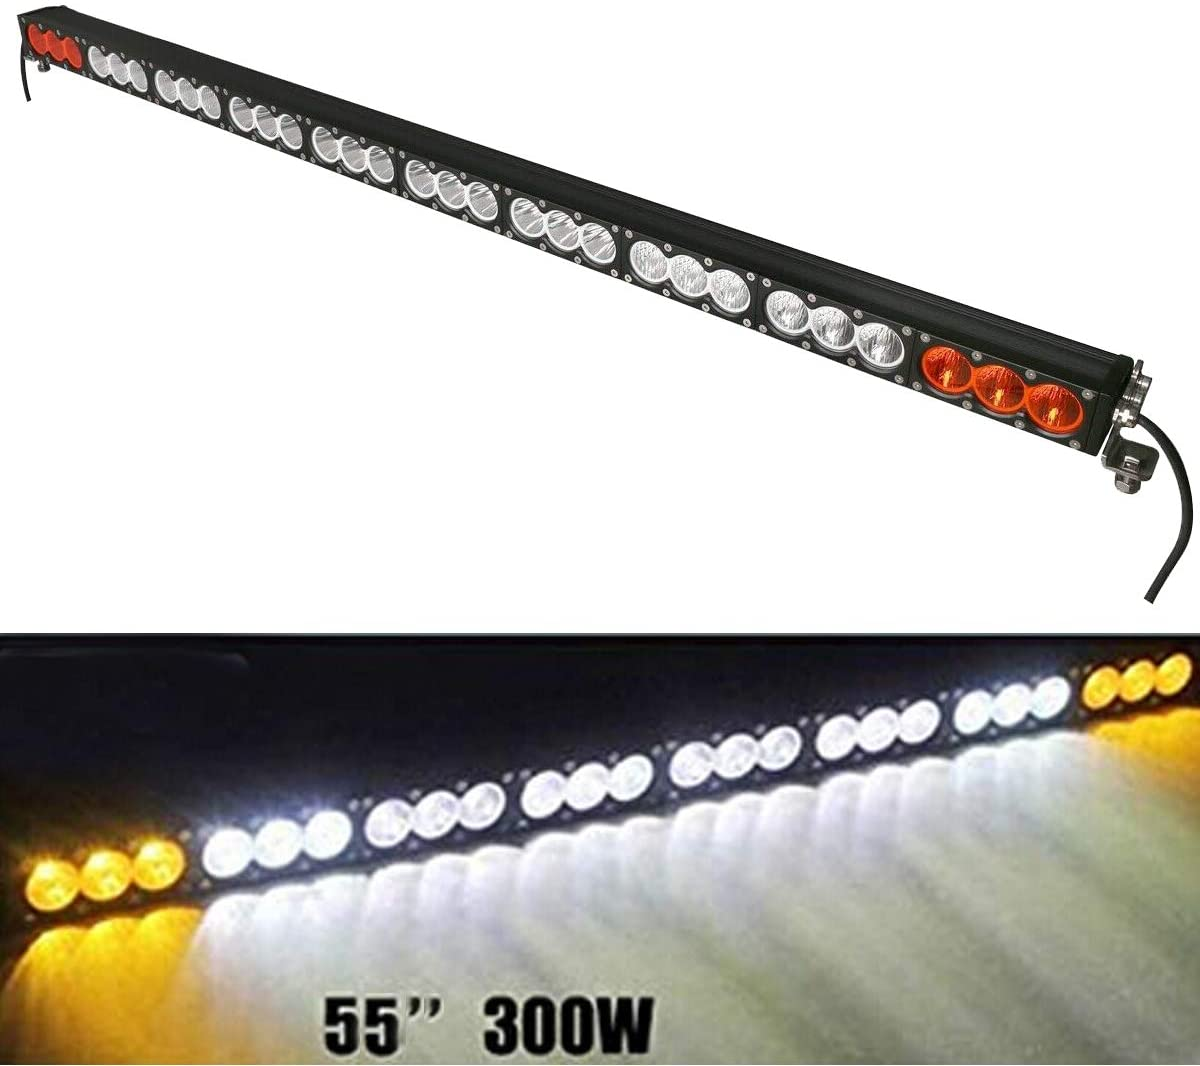 Lightronic 55 Inch 300W Super Bright Driving/Combo Beam Amber/White CREE Off-Road Single Row LED Light Bar for Driving in Fog Rain Snow & Dust, IP69 Waterproof Rating, 1-Piece